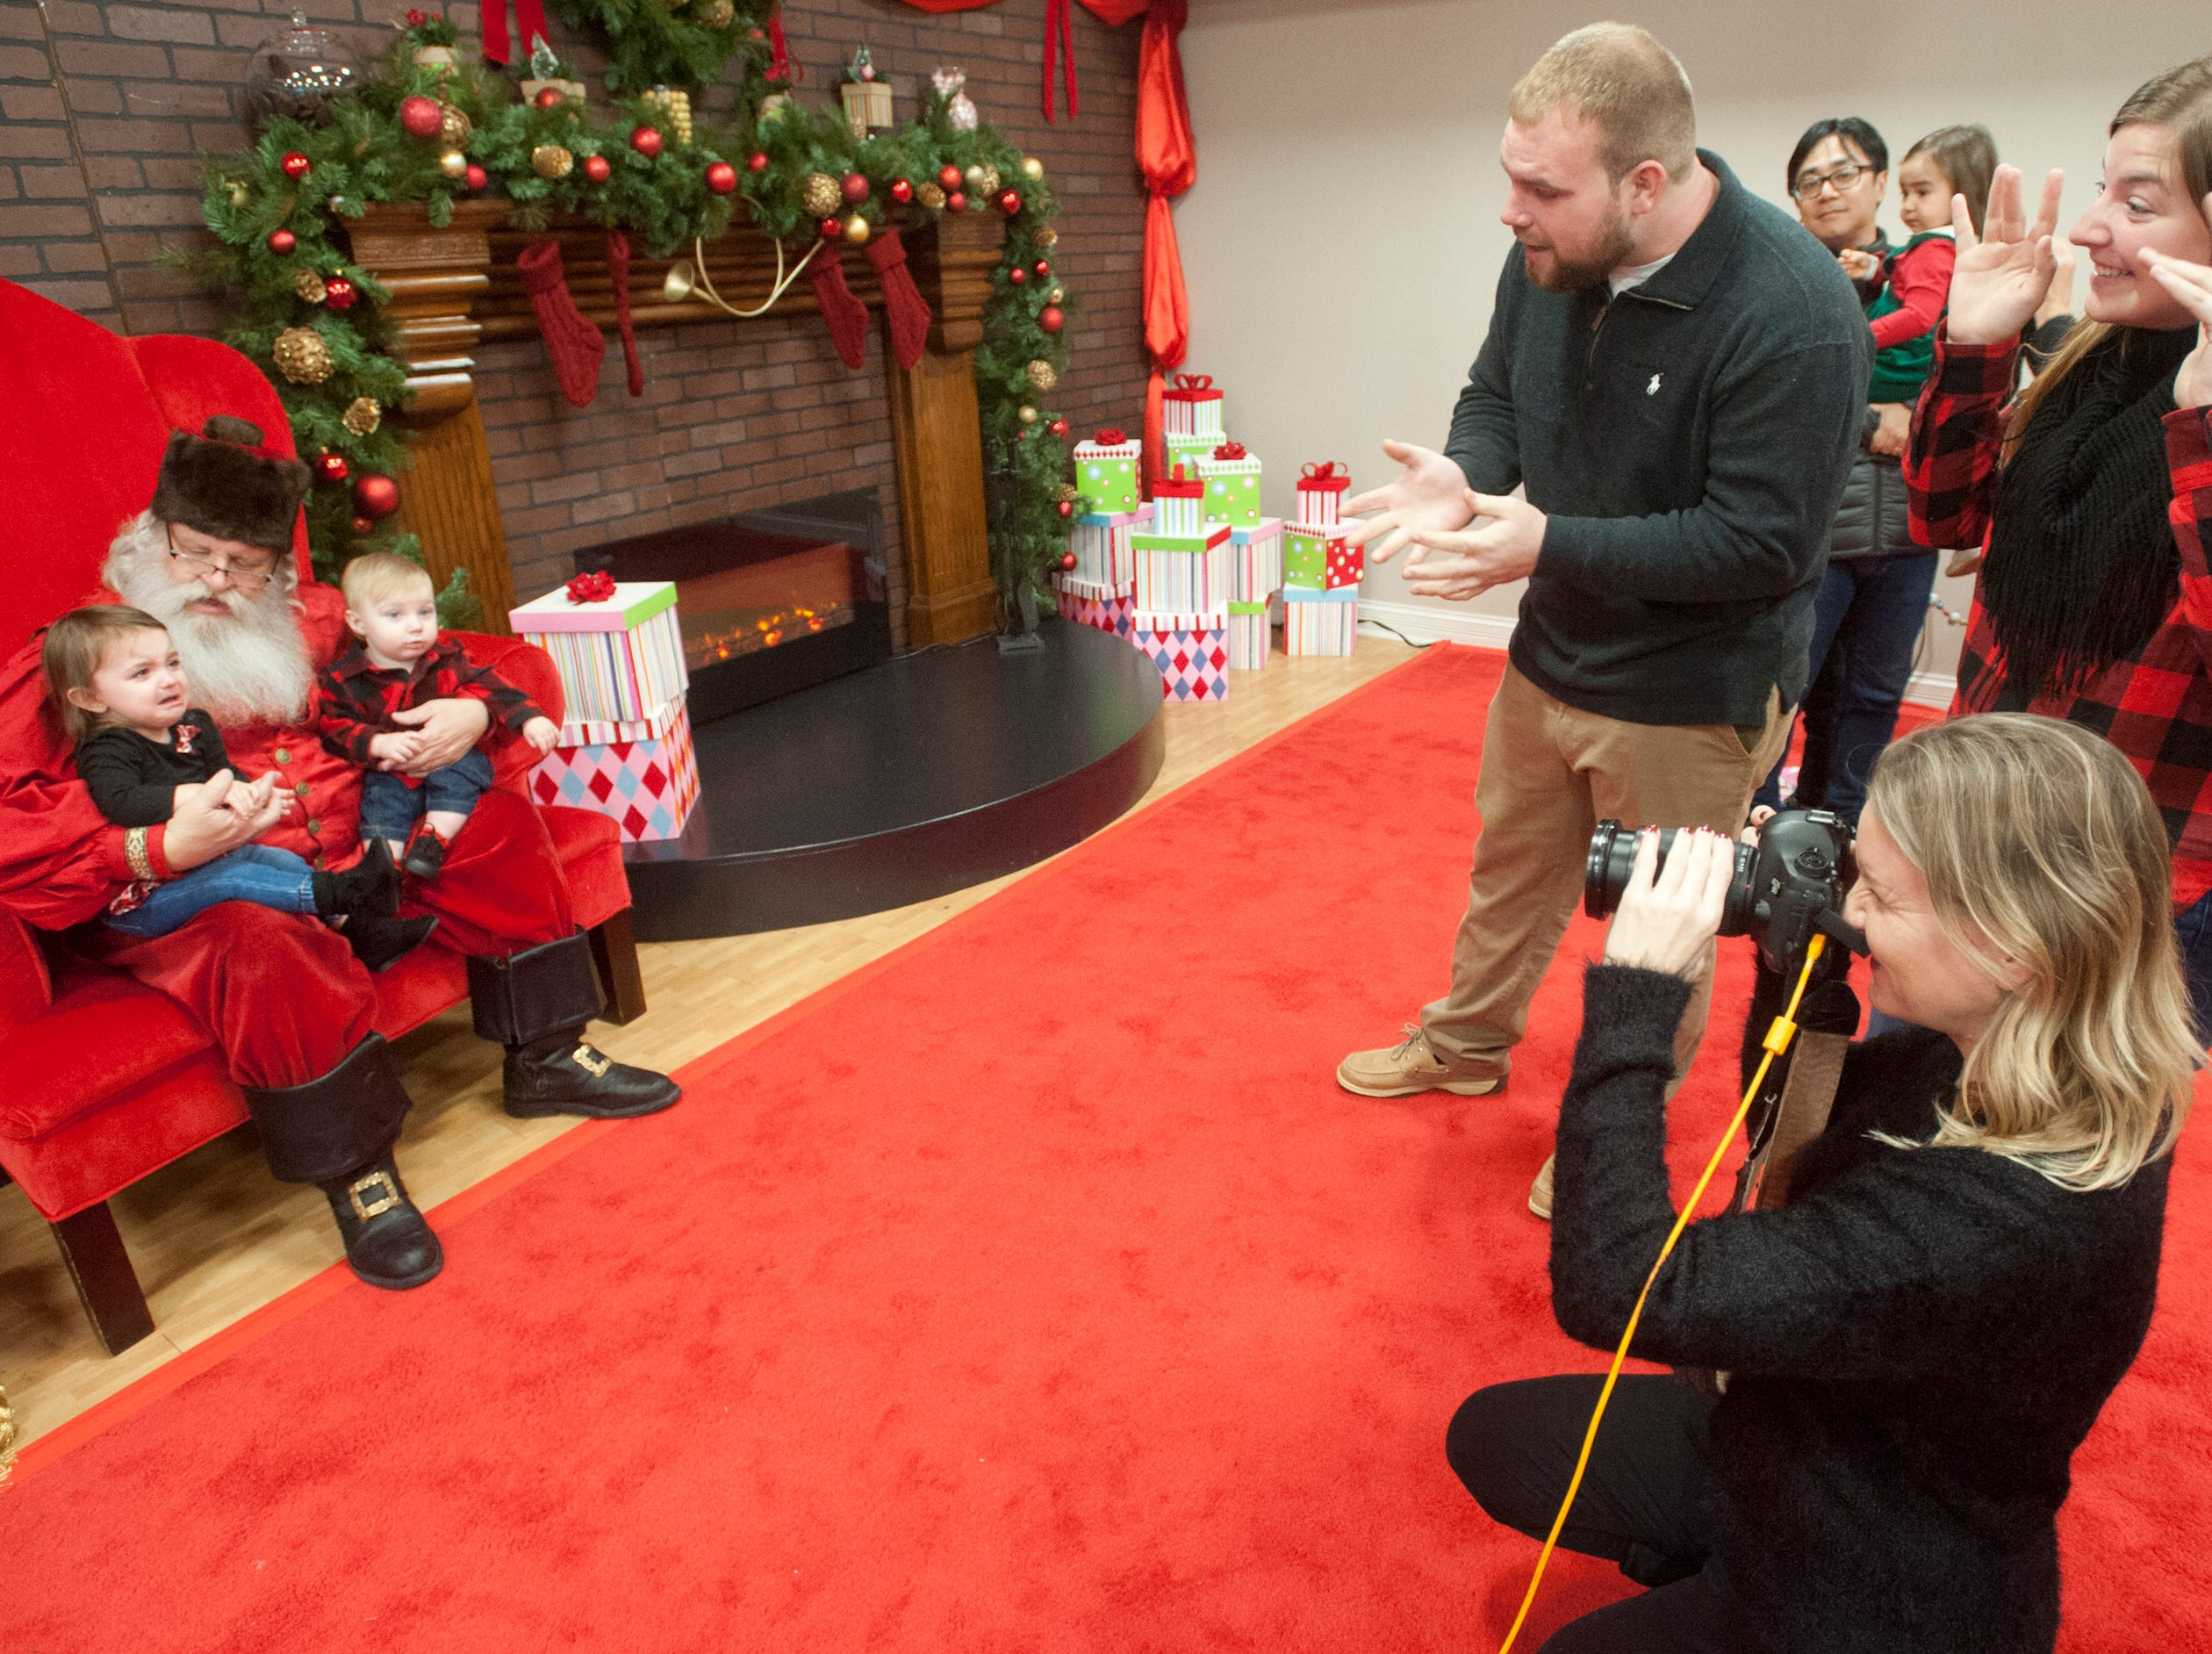 """Dalton and Cameron Estep of Pleasure Ridge Park make fun faces at their niece, Harper, age one (left), and their son, Jaxon, 11 months while the two youngsters have their photo made with Santa at the Galt House Hotel's sold-out event,  """"Breakfast with Santa."""" Taking the photo is Mellisa G. Schroeder of Meissa G's photo studio.22 December 2018"""